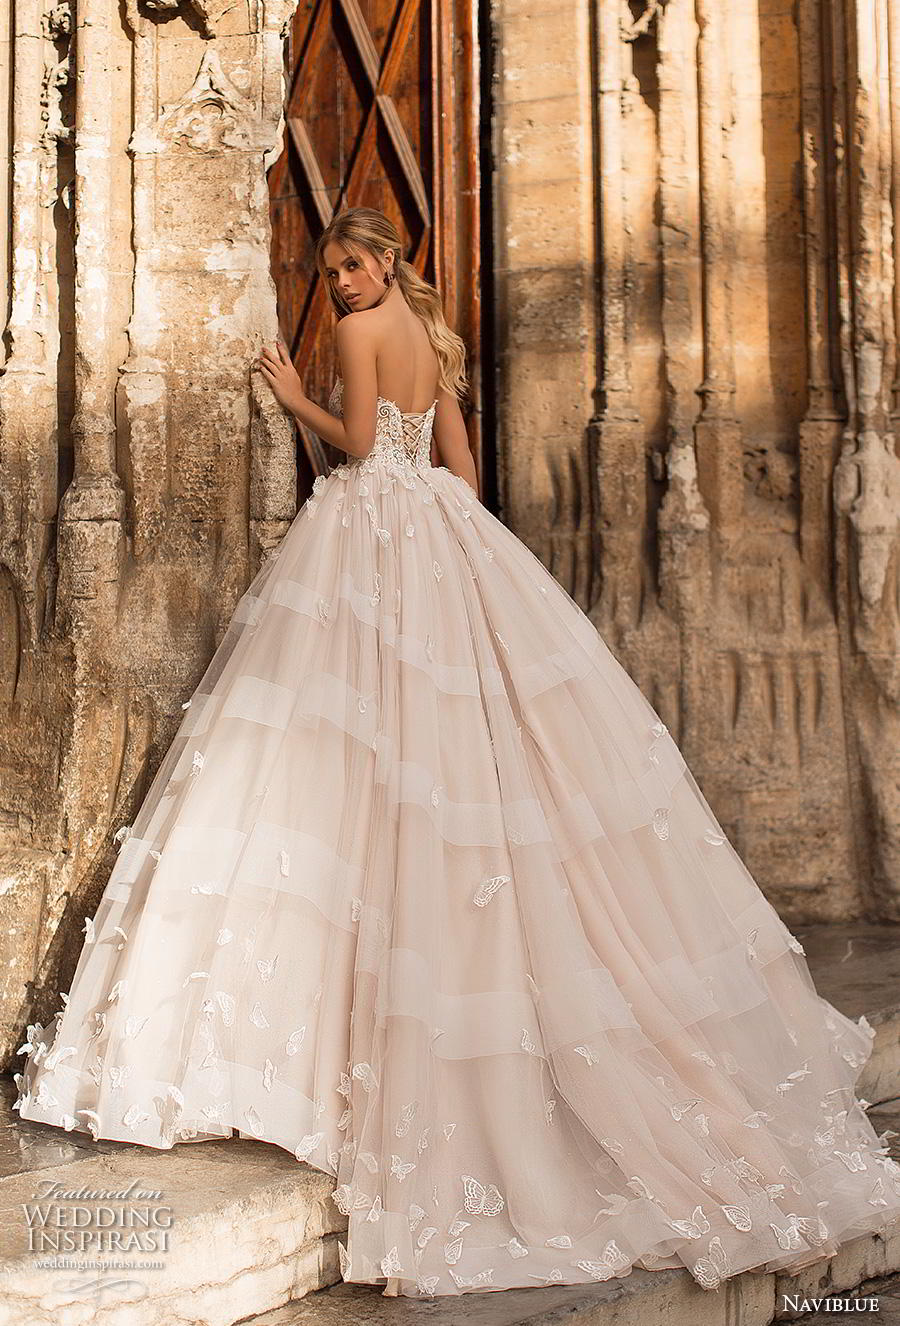 bdfa40d73d3 naviblue 2019 bridal strapless sweetheart neckline heavily embellished  bodice princess ball gown a line wedding dress